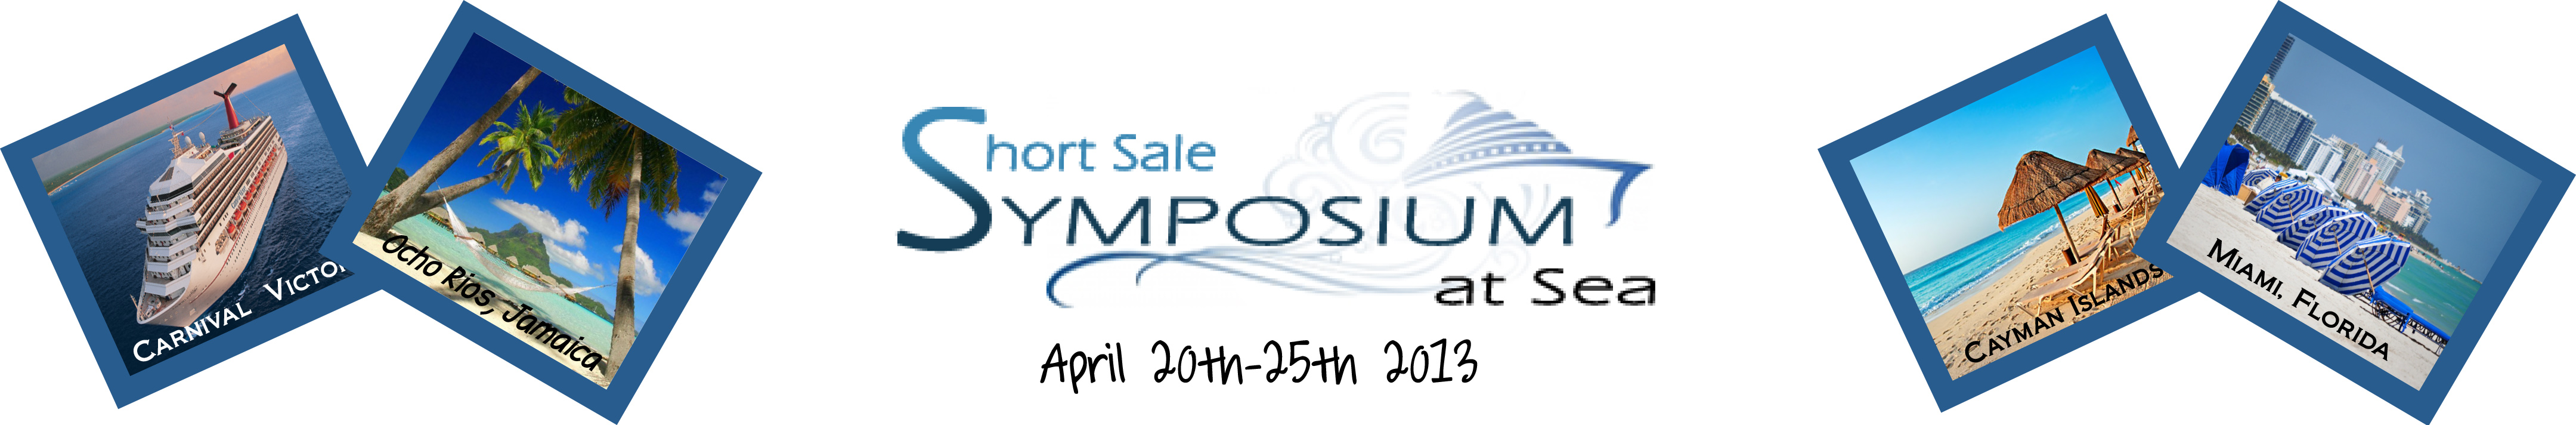 Short Sale Symposium at Sea Cruise Conference